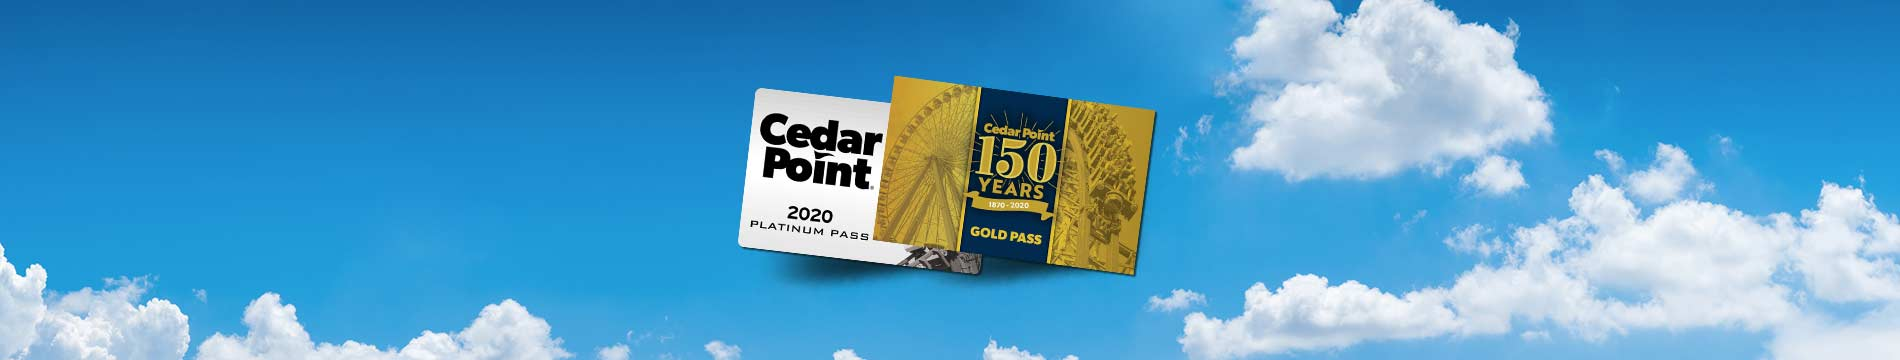 Cedar Point Season Pass Frequently Asked Questions